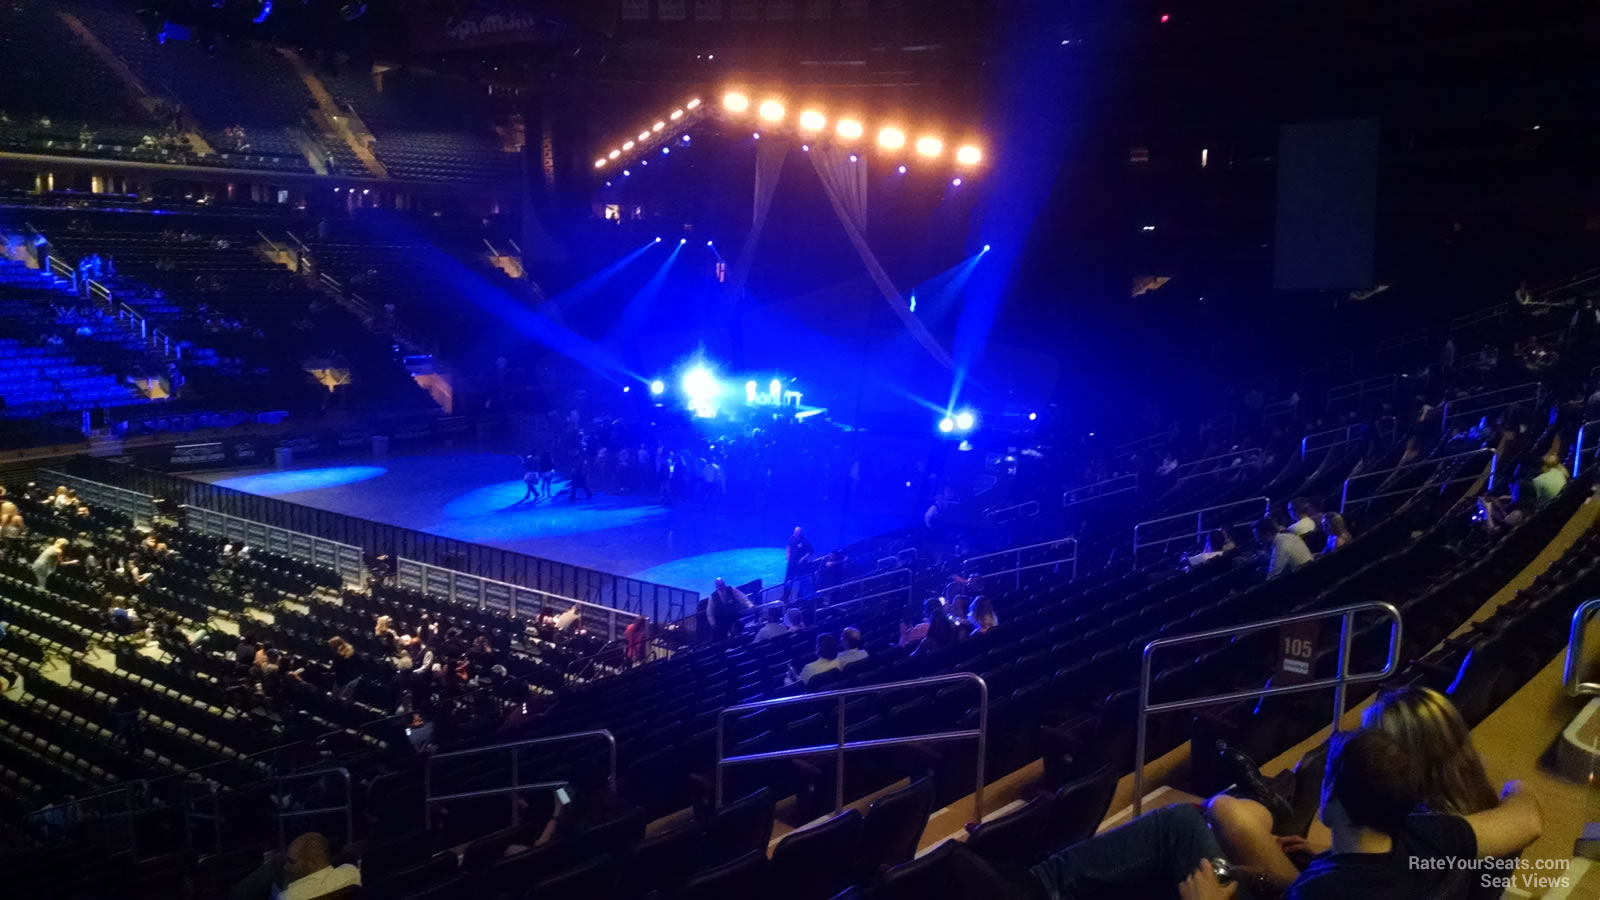 Madison square garden section 105 concert seating - Bruno mars tickets madison square garden ...